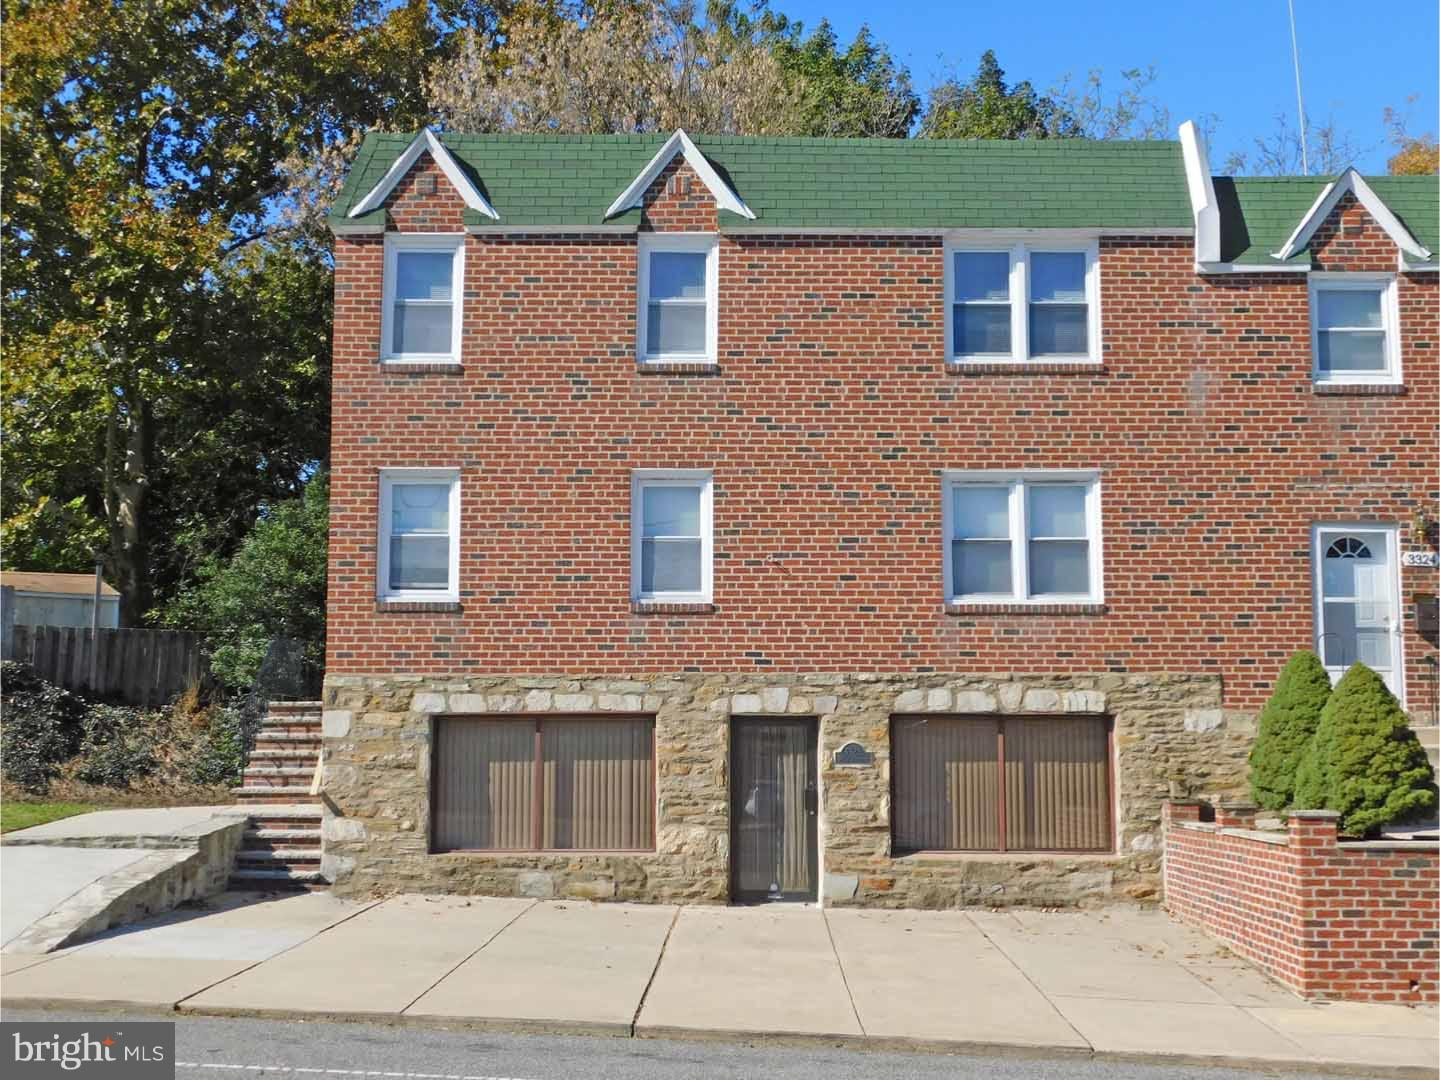 3326 WELSH ROAD, PHILADELPHIA, PA 19136